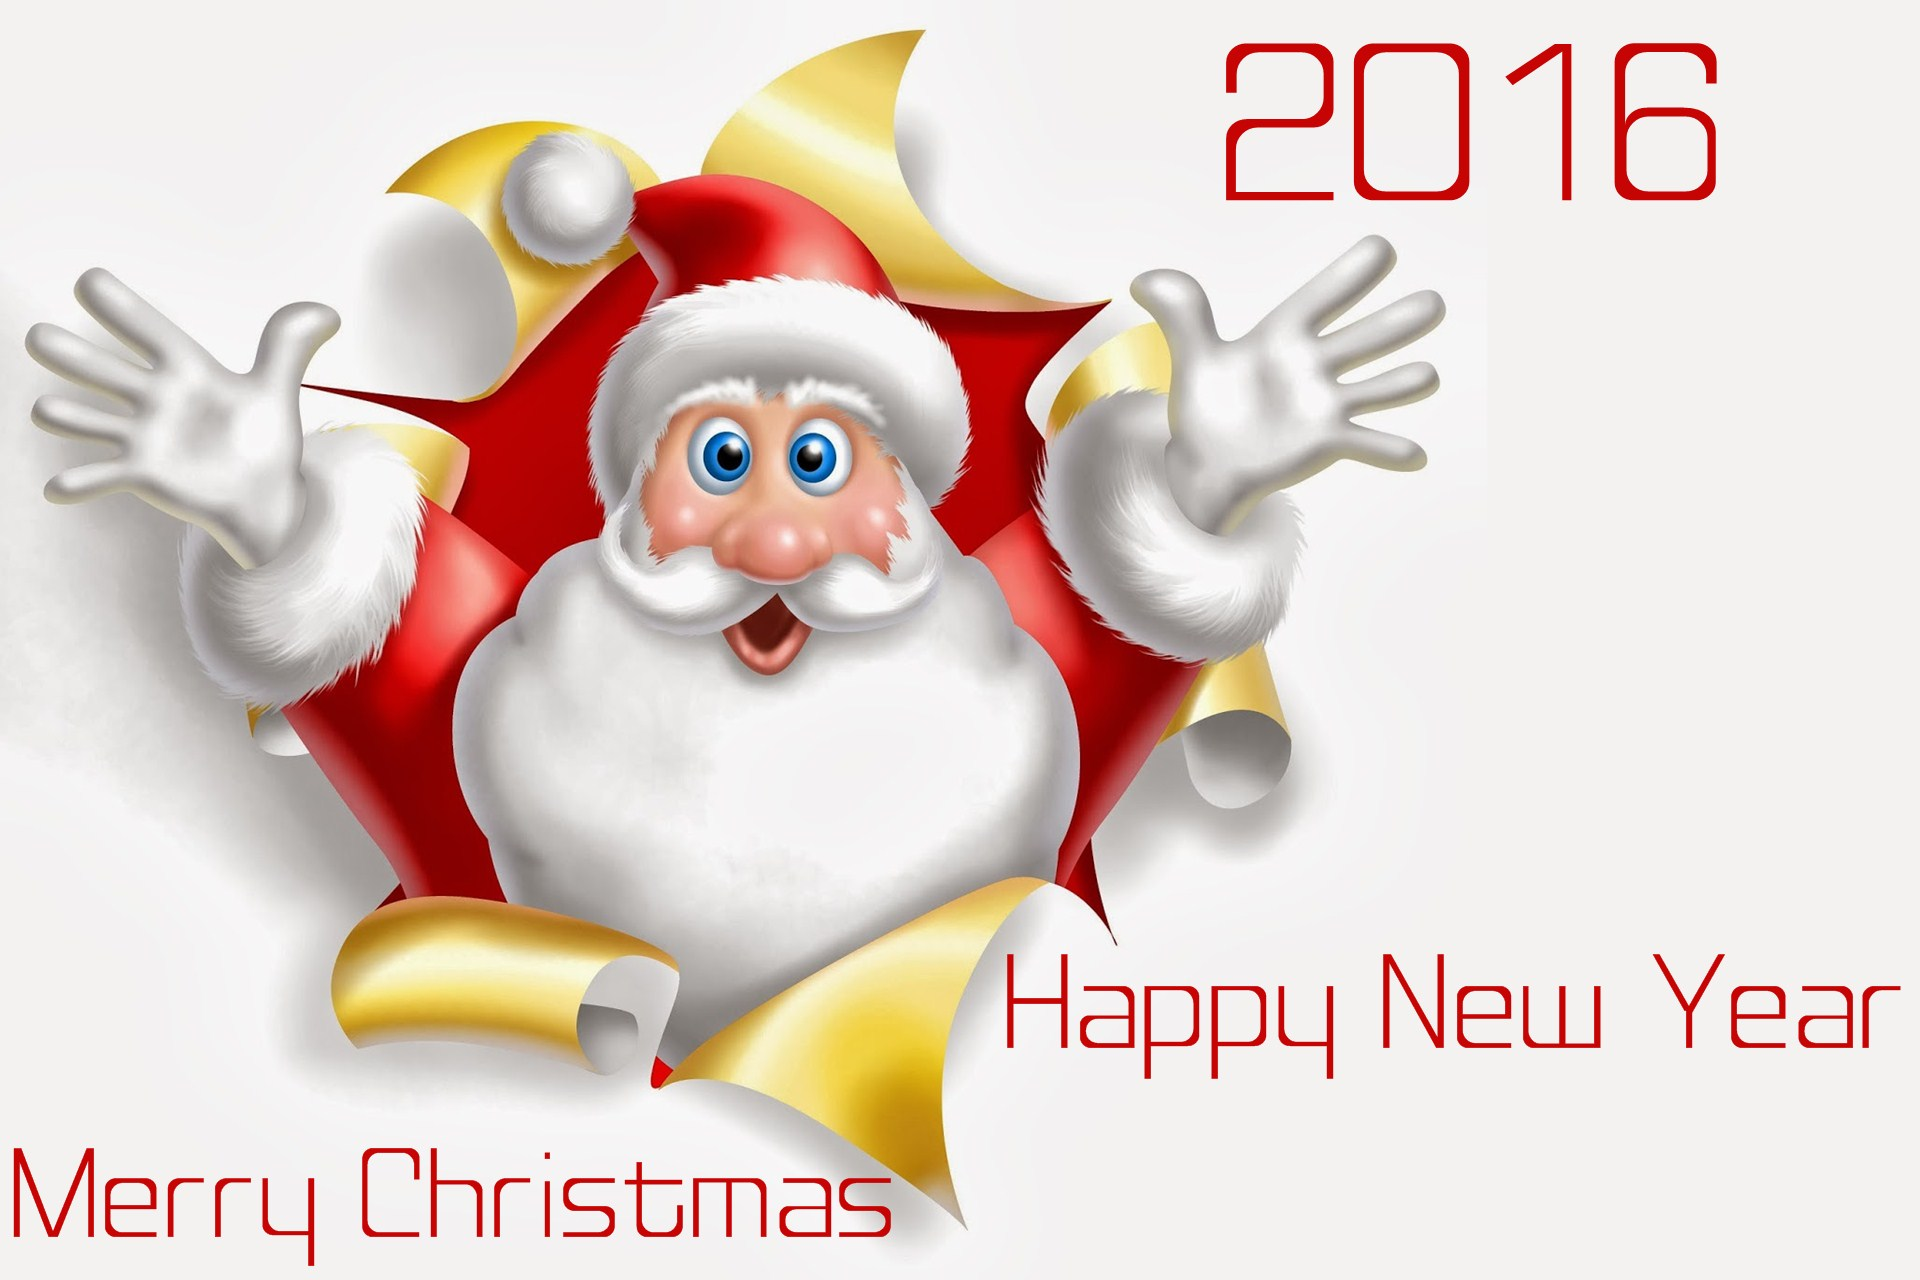 Superior Christmas 2016 Wishes, Images, Messages For WhatsApp